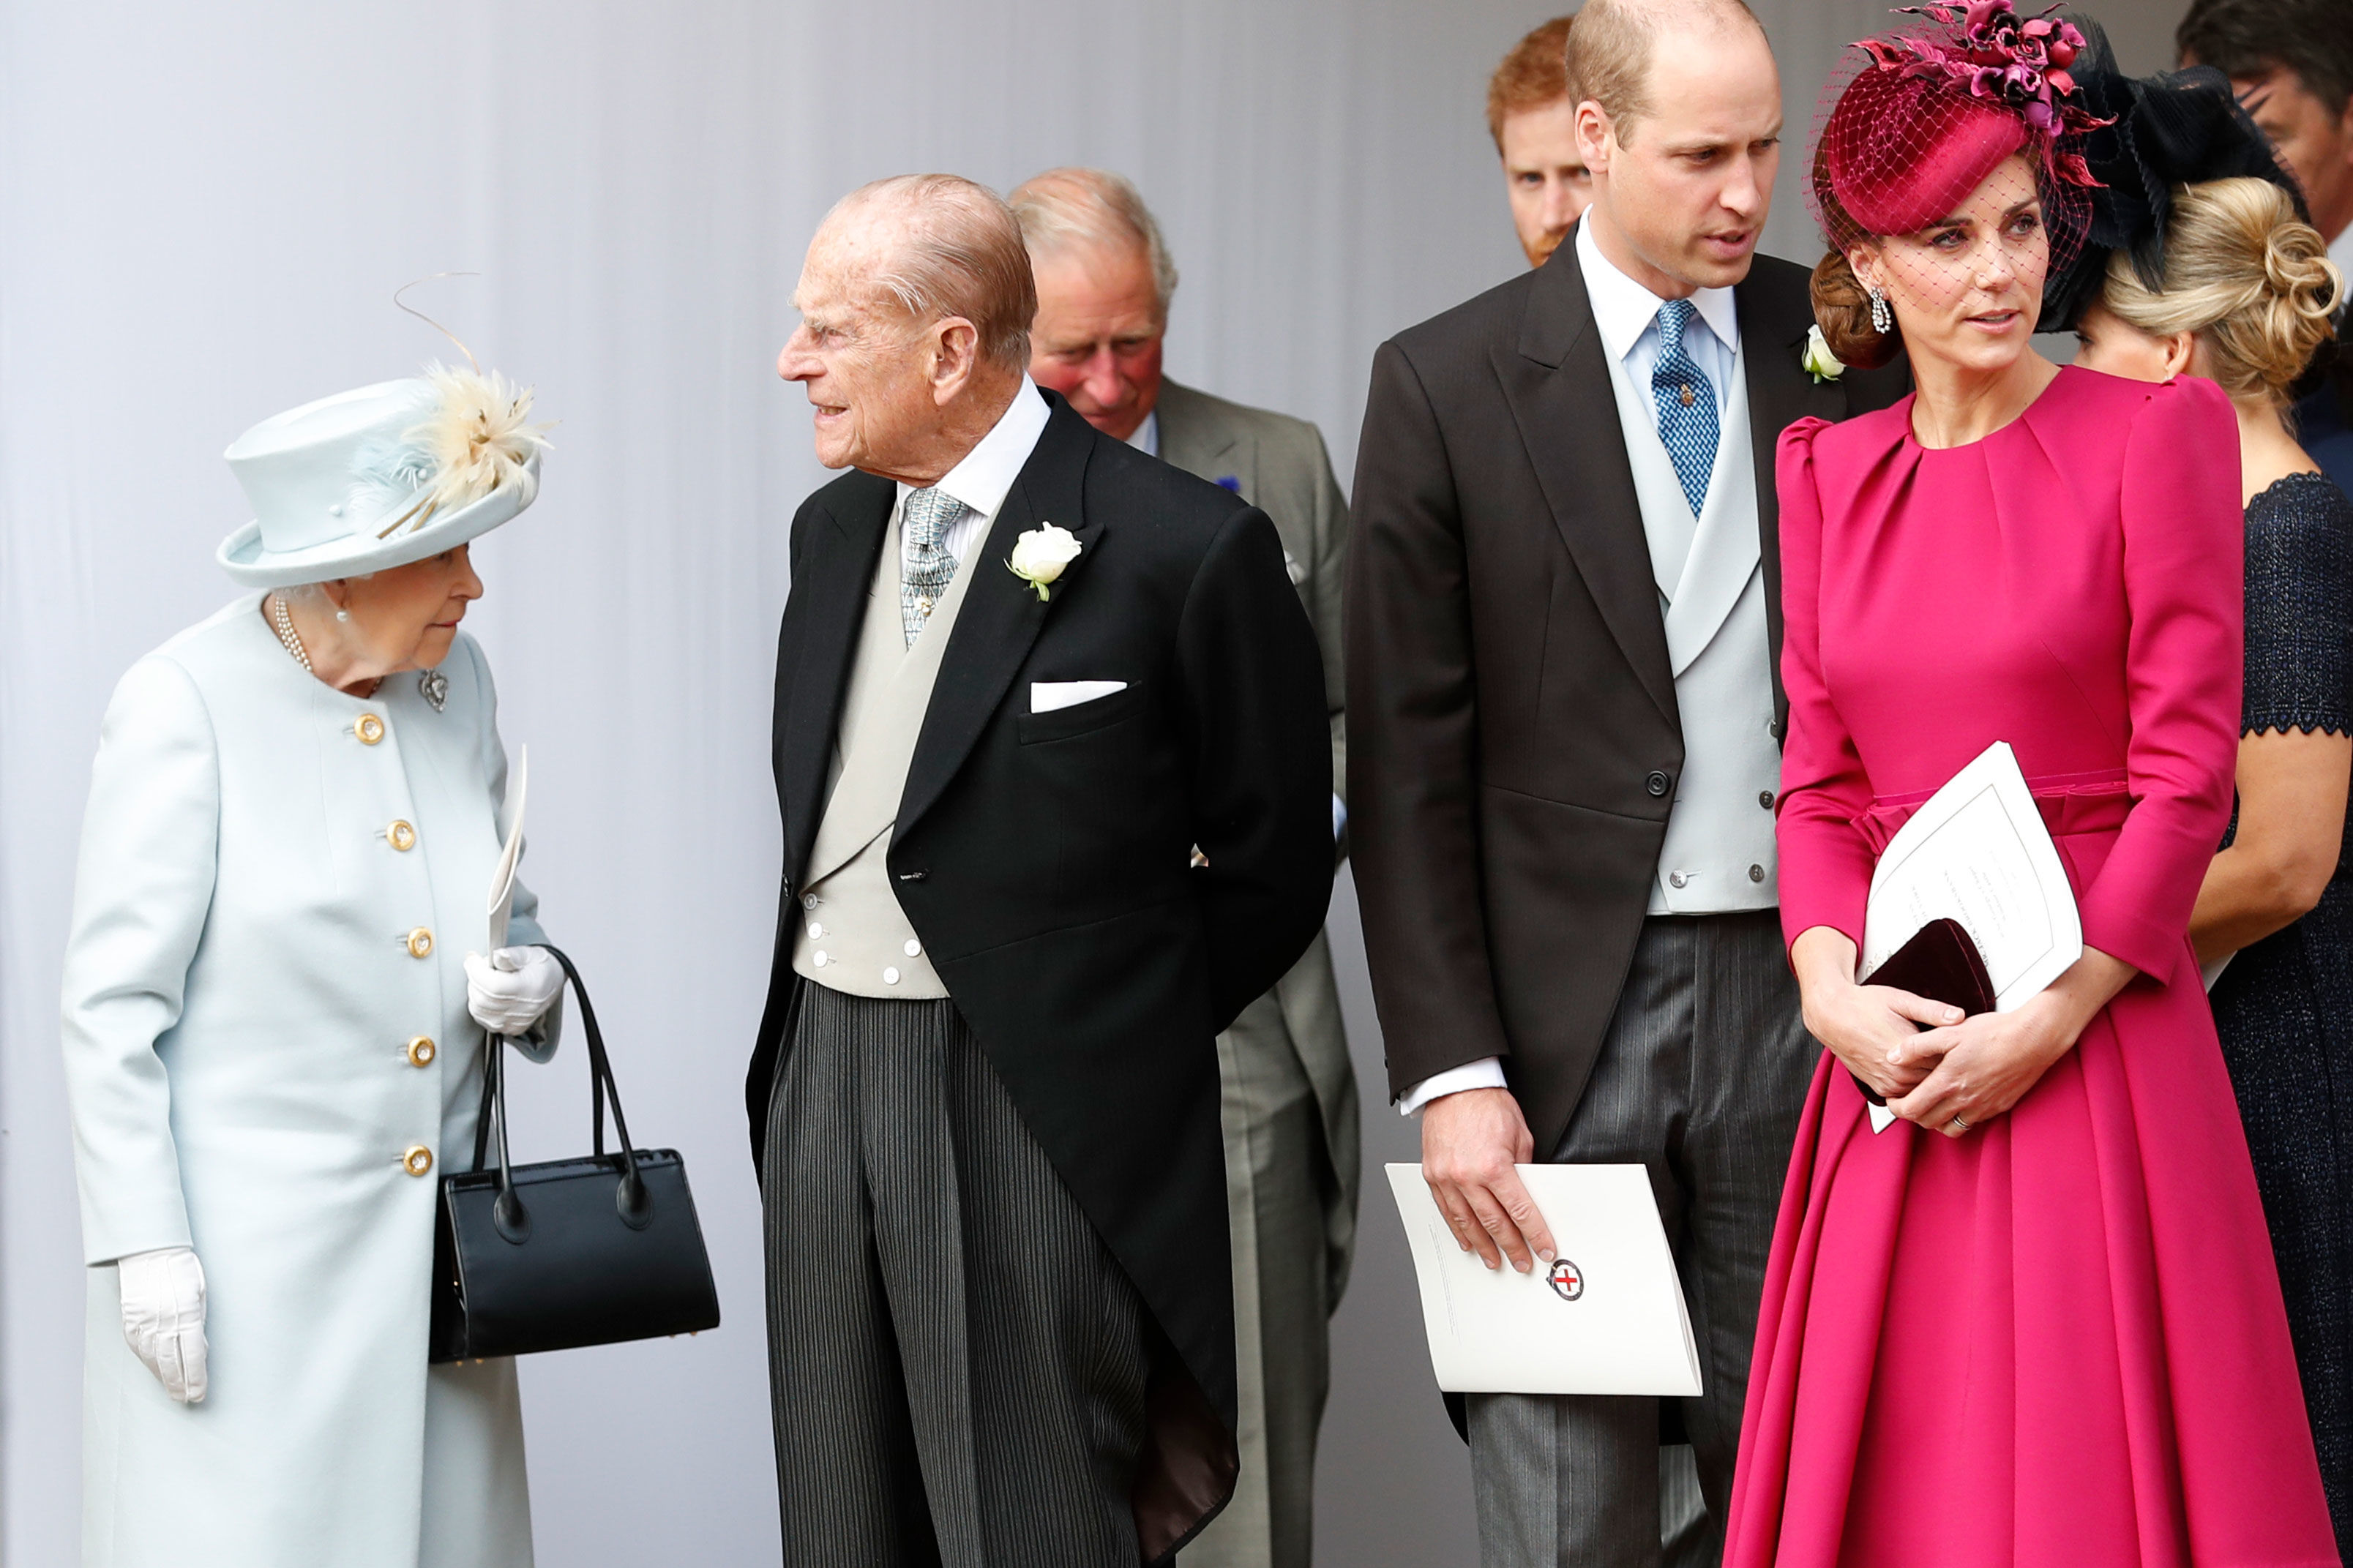 Kate Middleton's Unexpected Look for Today's Royal Wedding Just Wrote the New Wedding Guest Dress Code